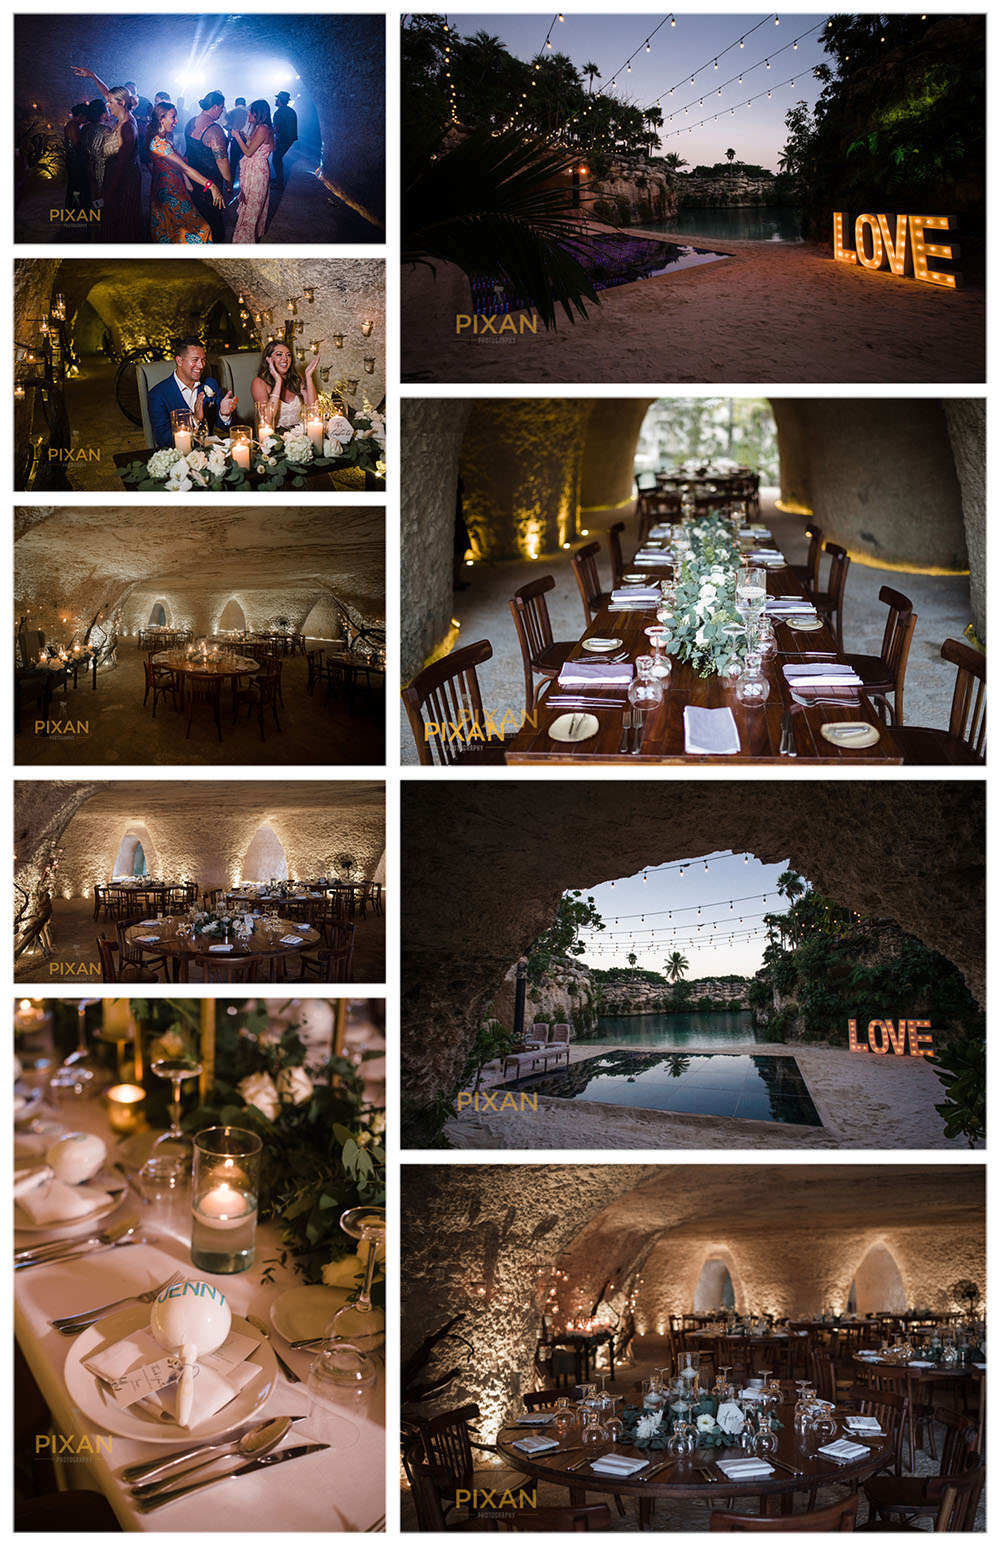 Cuevas-Restaurant-Wedding-Reception-Venue-Hotel-Xcaret